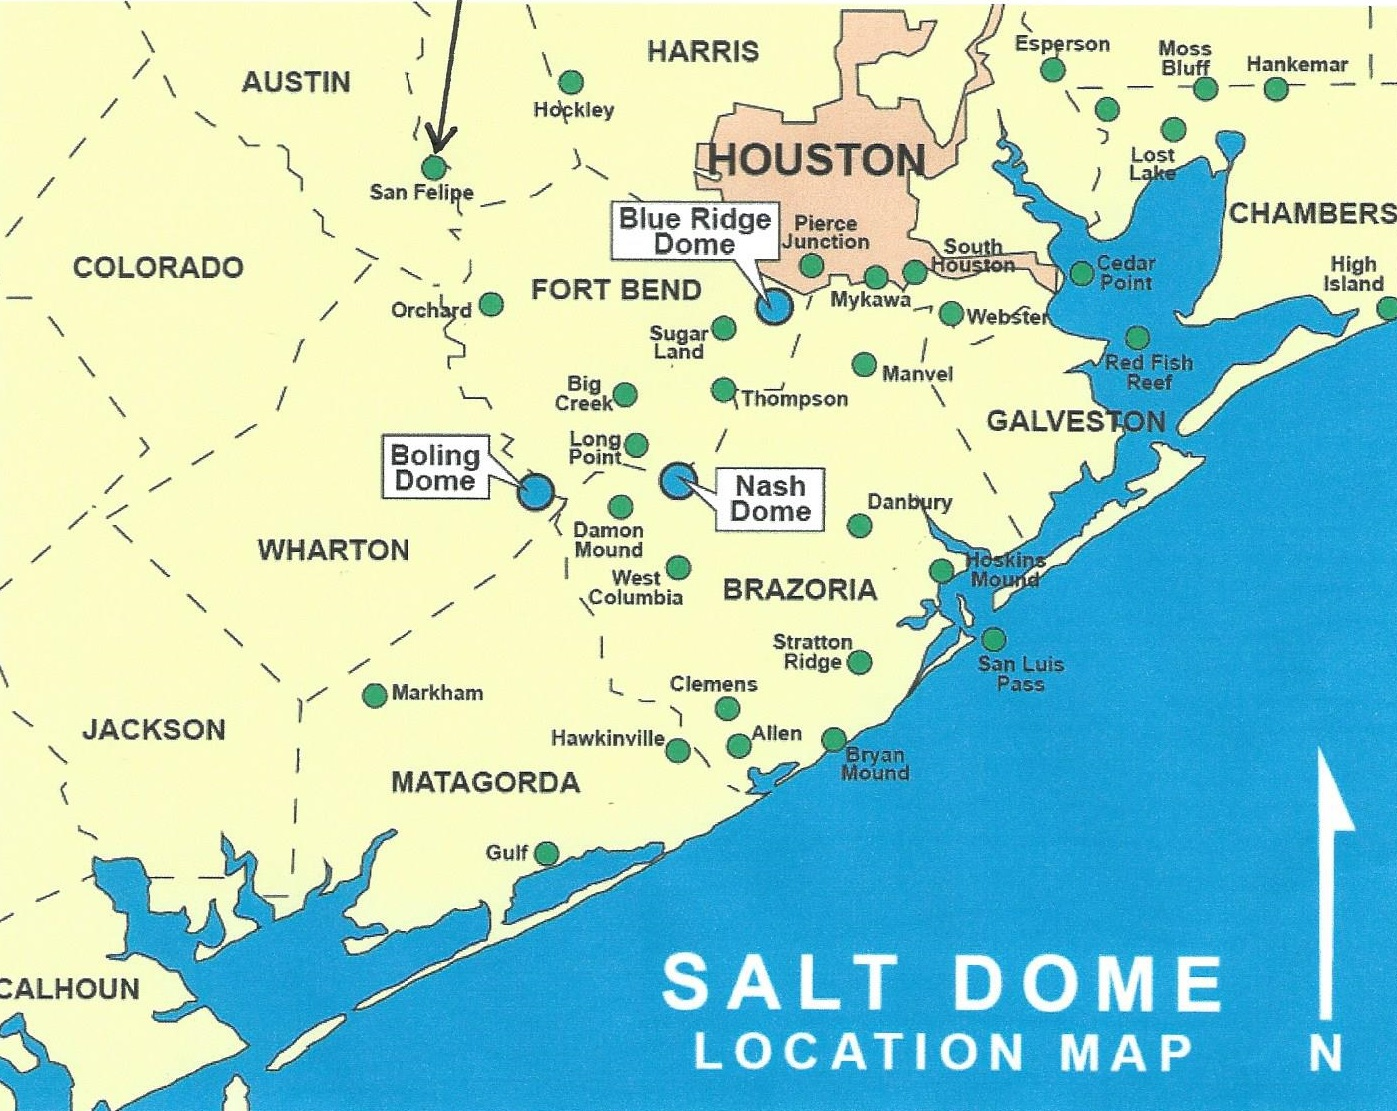 Texas Energy Exploration, LLC: Salt Dome Map Gulf Coast ... on red map of texas, dripping springs texas, heat map of texas, drive map of texas, map of refineries in texas, contour lake maps texas, salt production in the usa map, amaretto map of texas, gravity map of texas, salt maps for school projects, sinkhole map of texas,